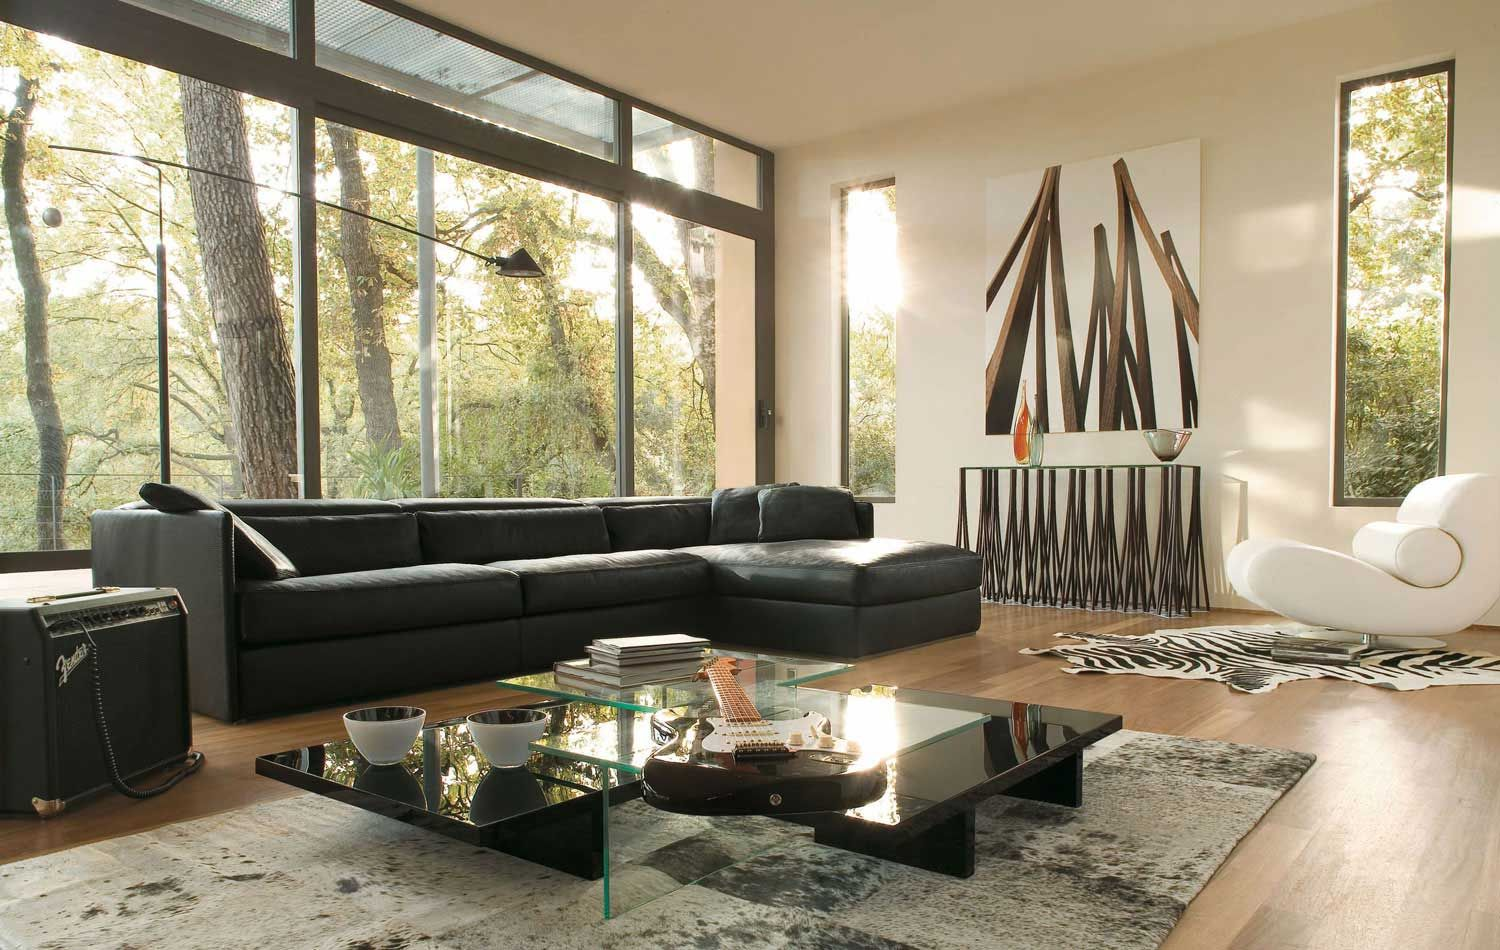 Living Room Design Concepts Awesome Interior Comfy Modern Living Room Ideas With Open Design Concept Design Ideas